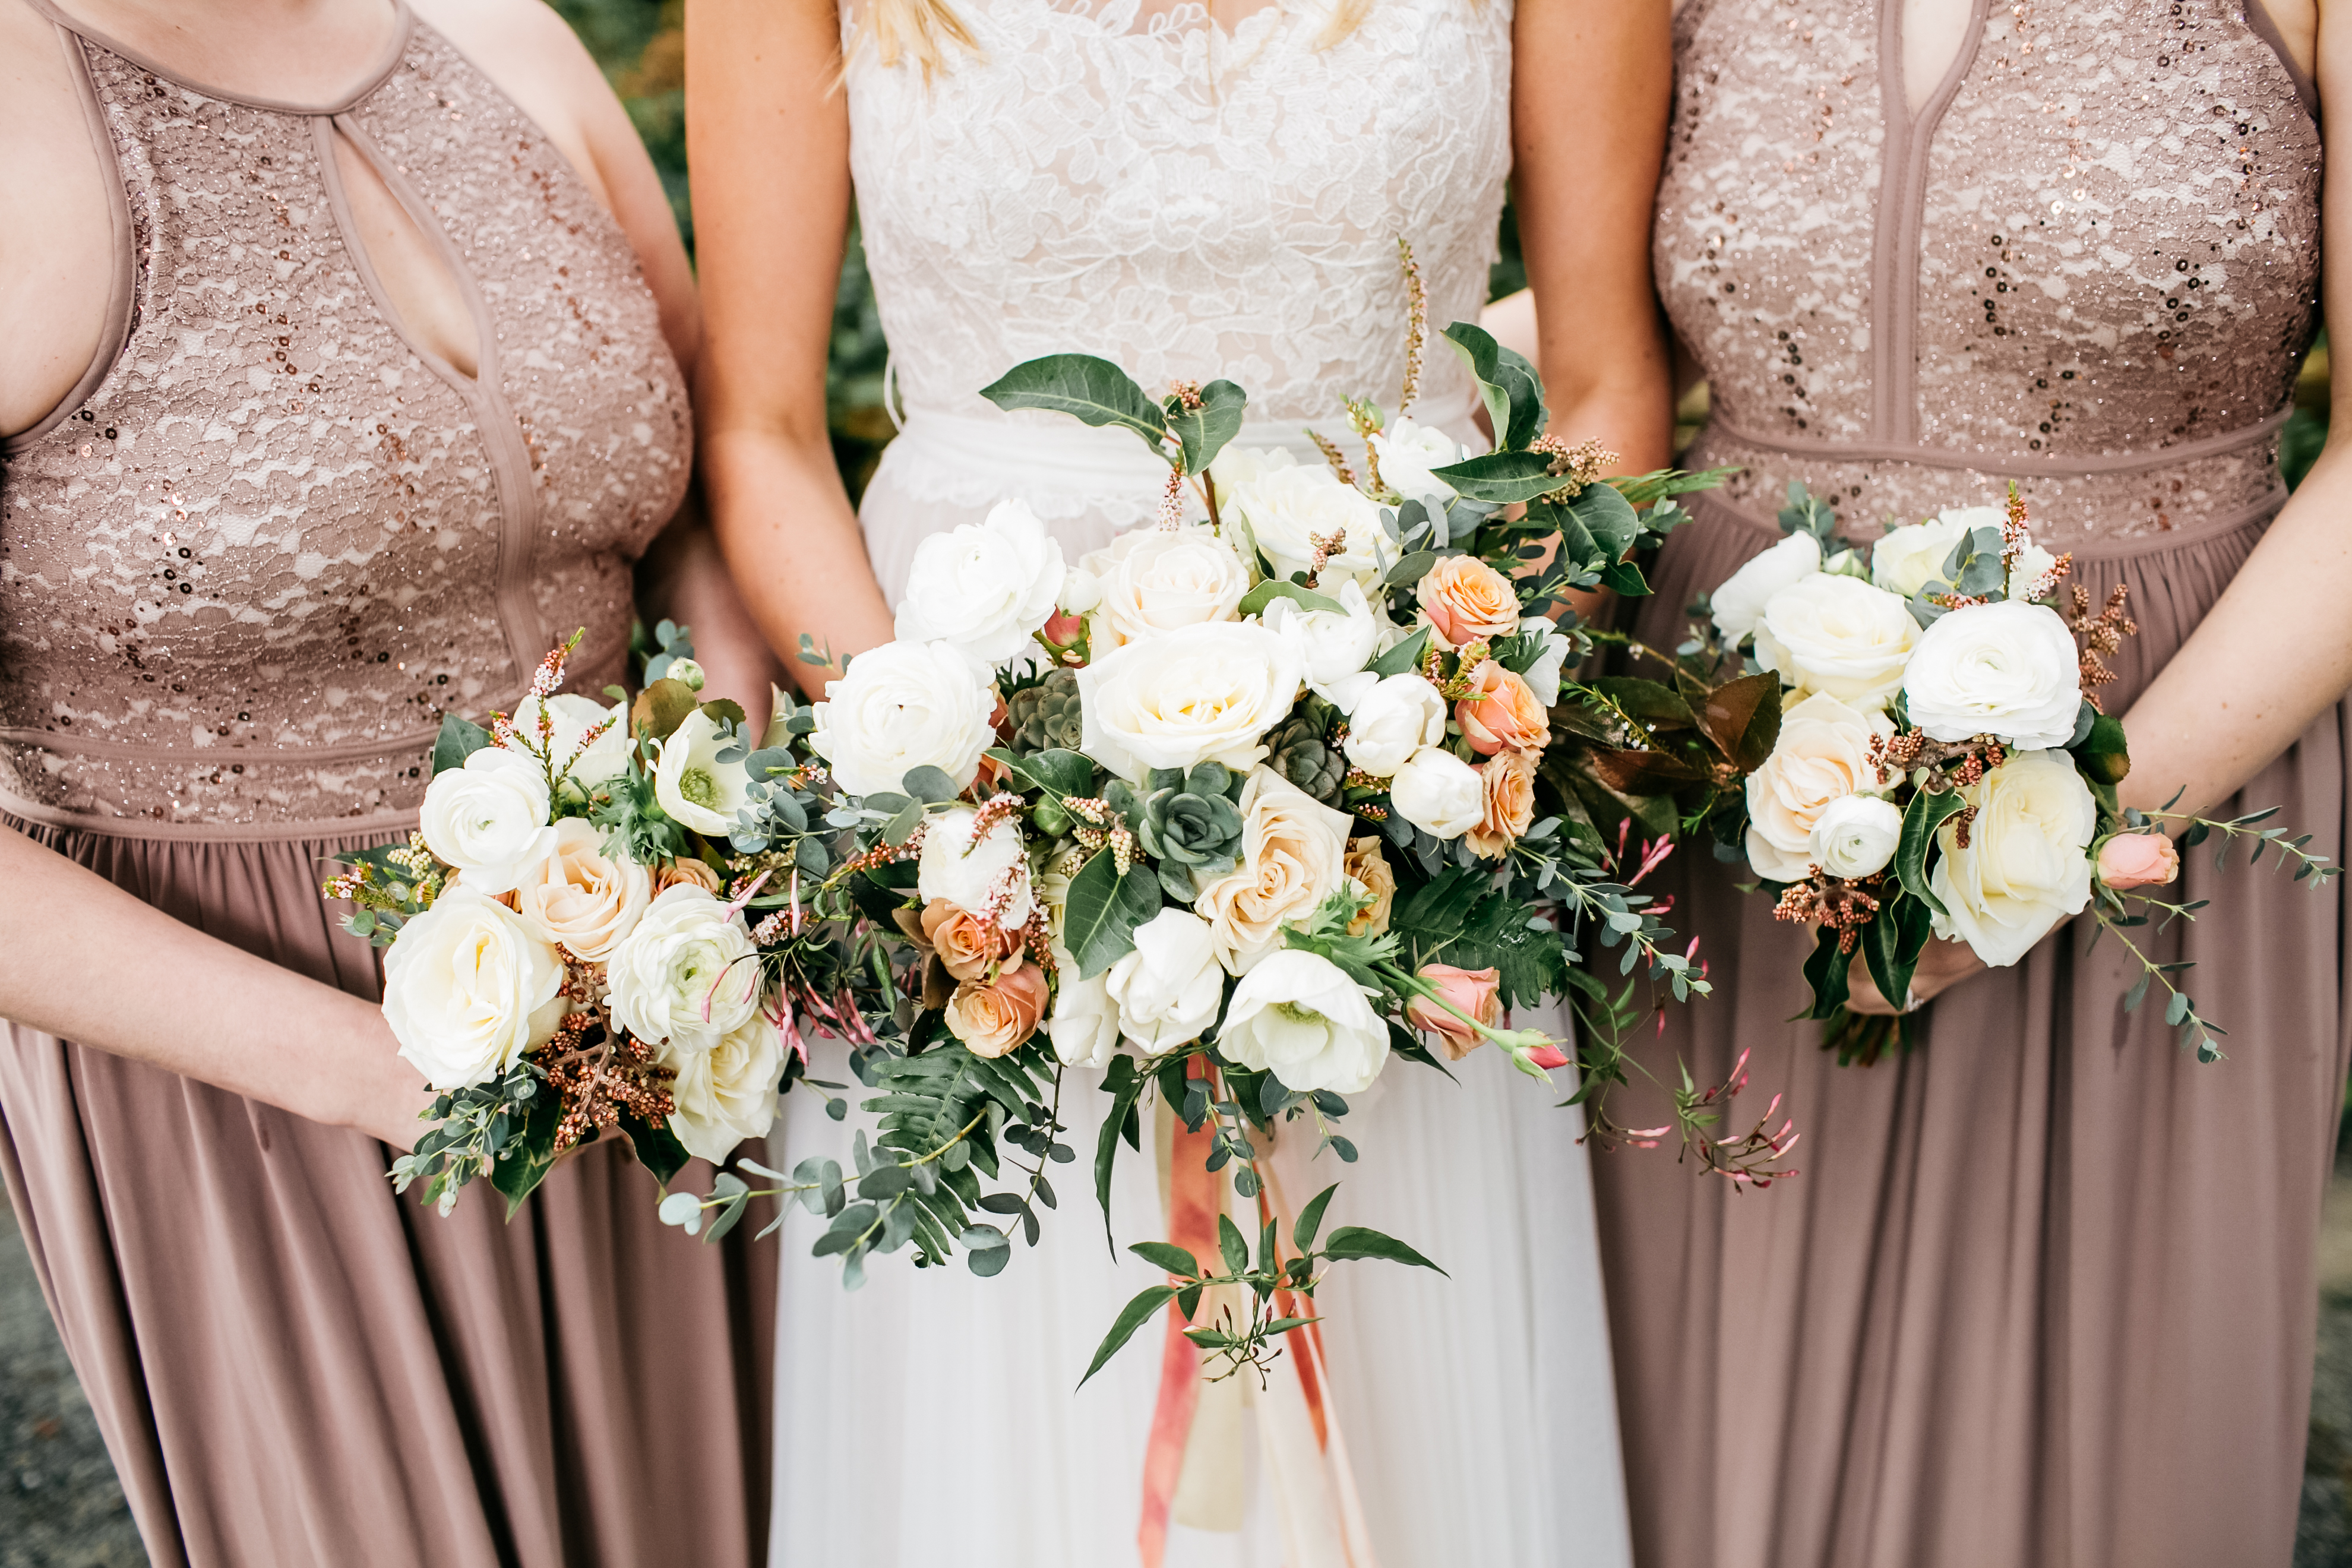 Whidbey island wedding flowers by tobey nelson photography by catie bride and bridesmaid bouquets in white blush neutral and grey for a spring destination mightylinksfo